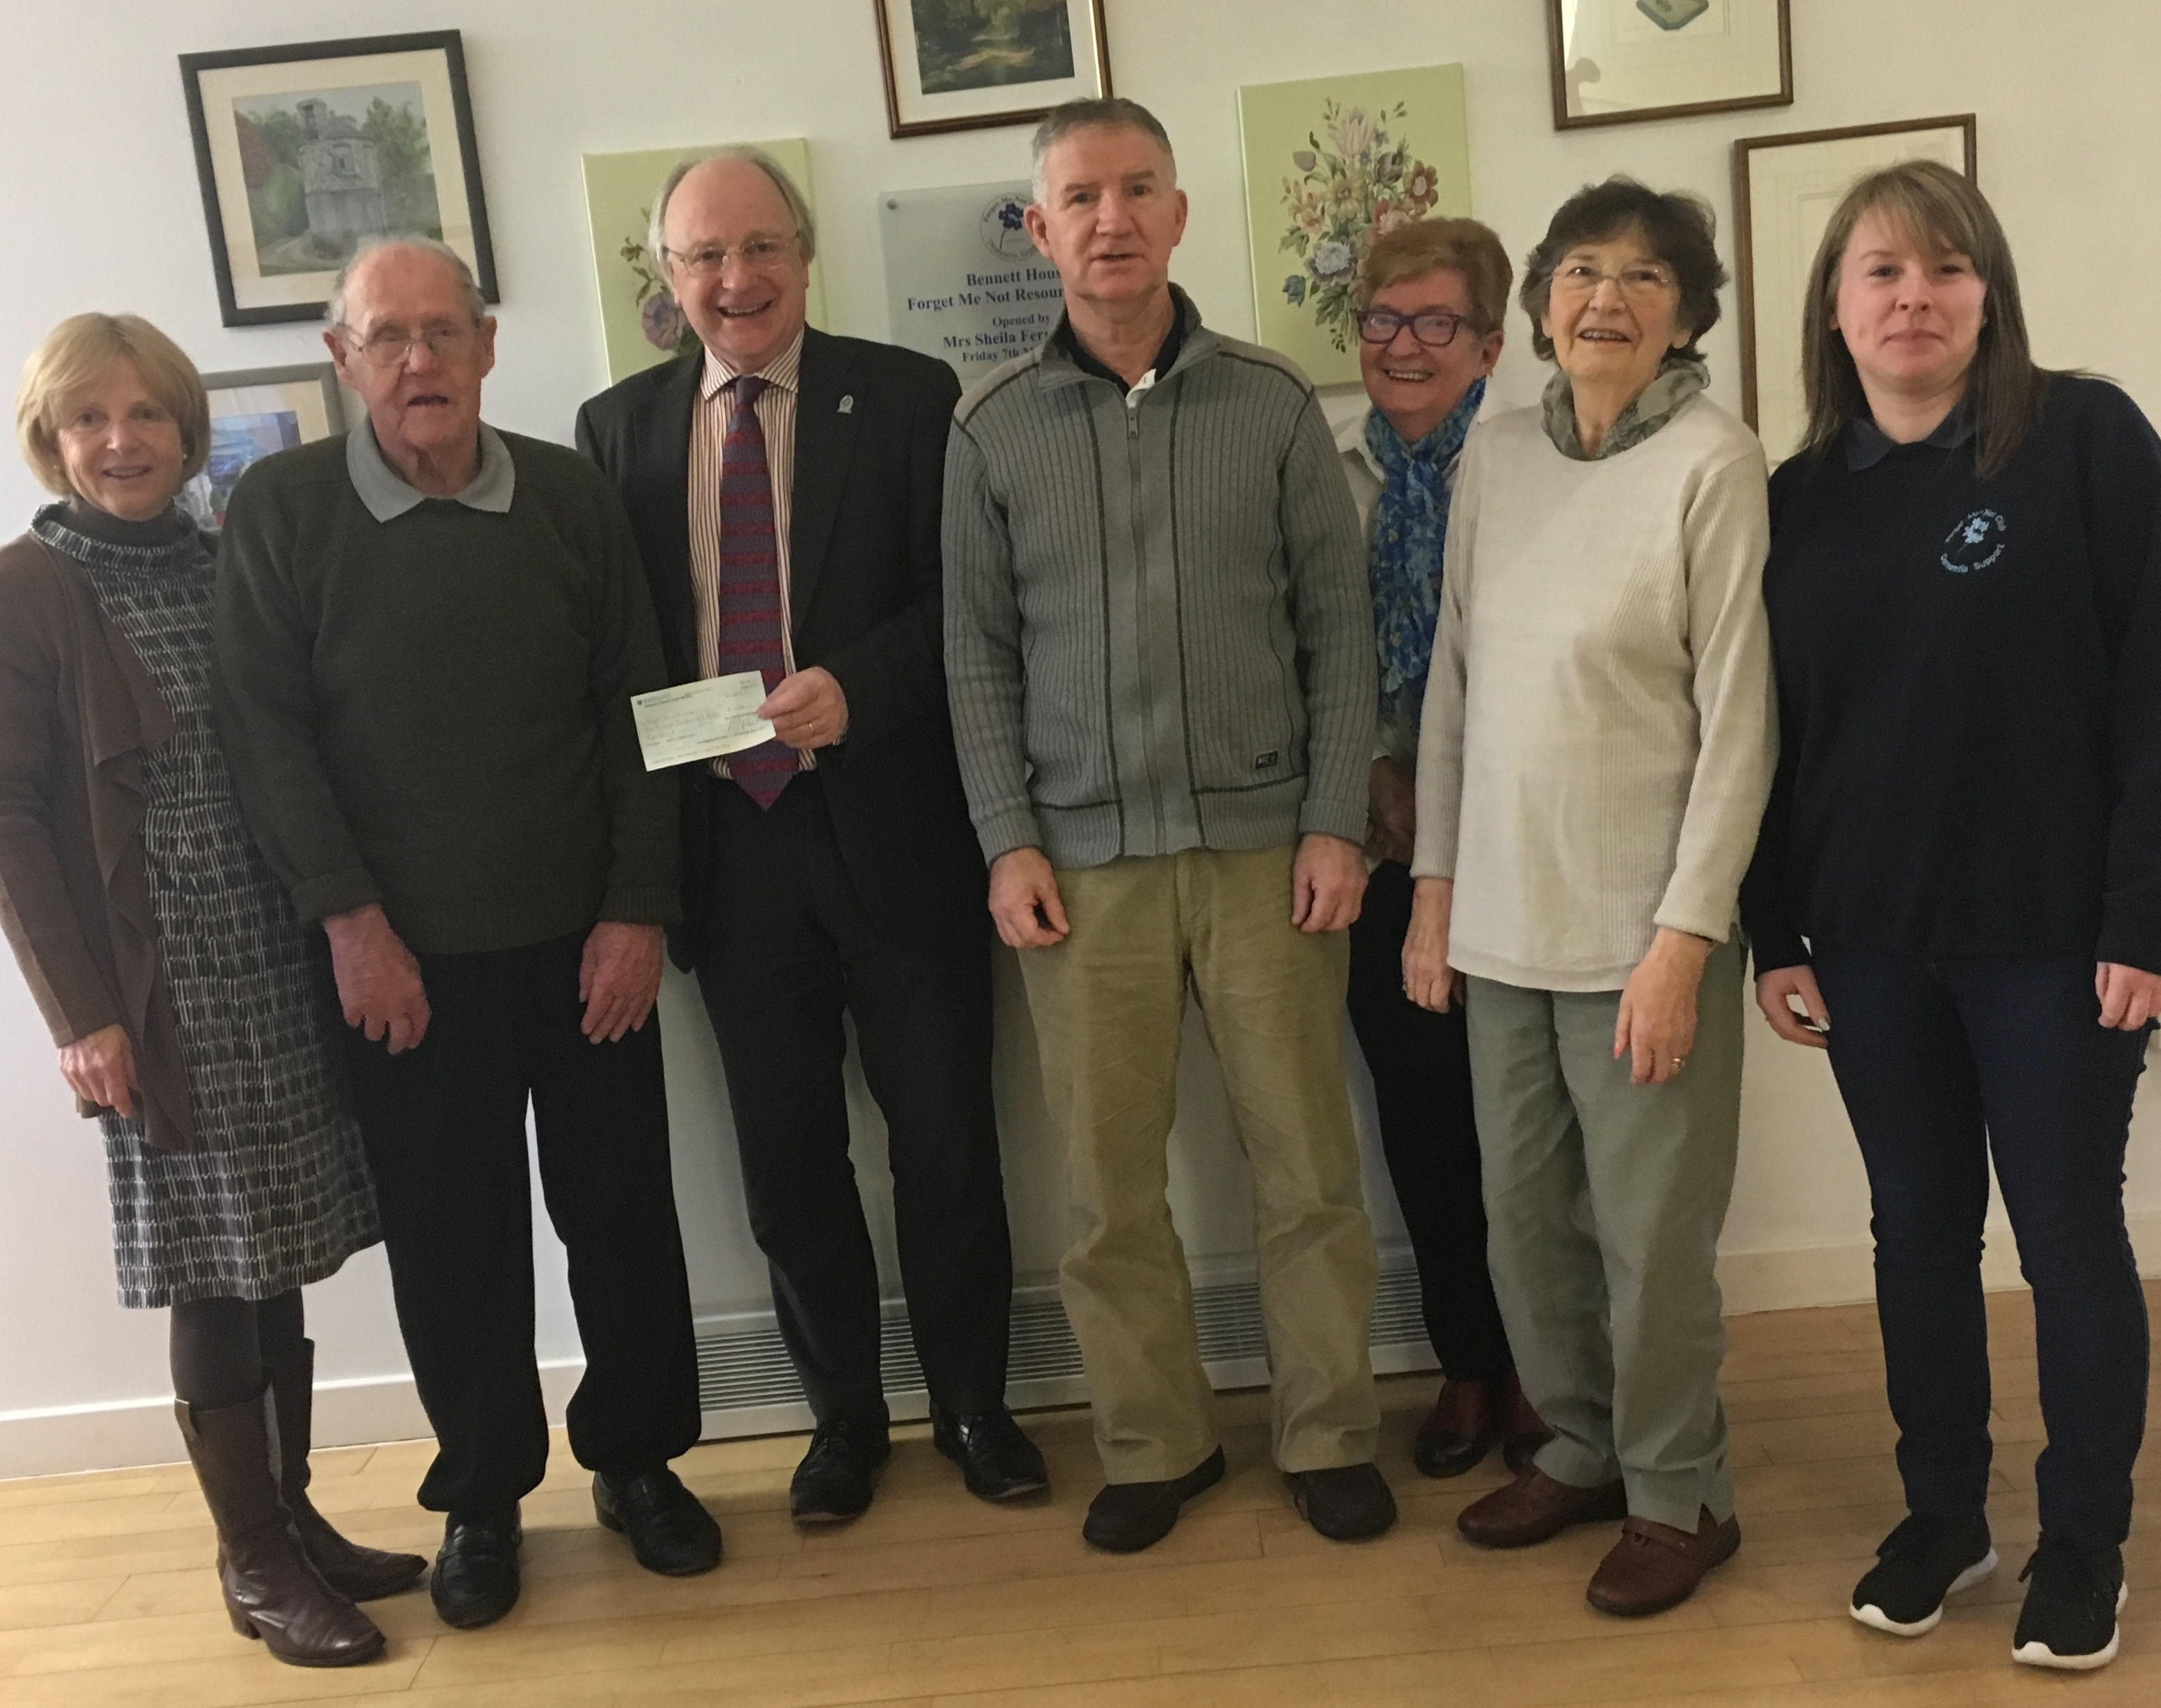 Malcolm Nicol presents a cheque to the Forget Me Not Club in Banchory.